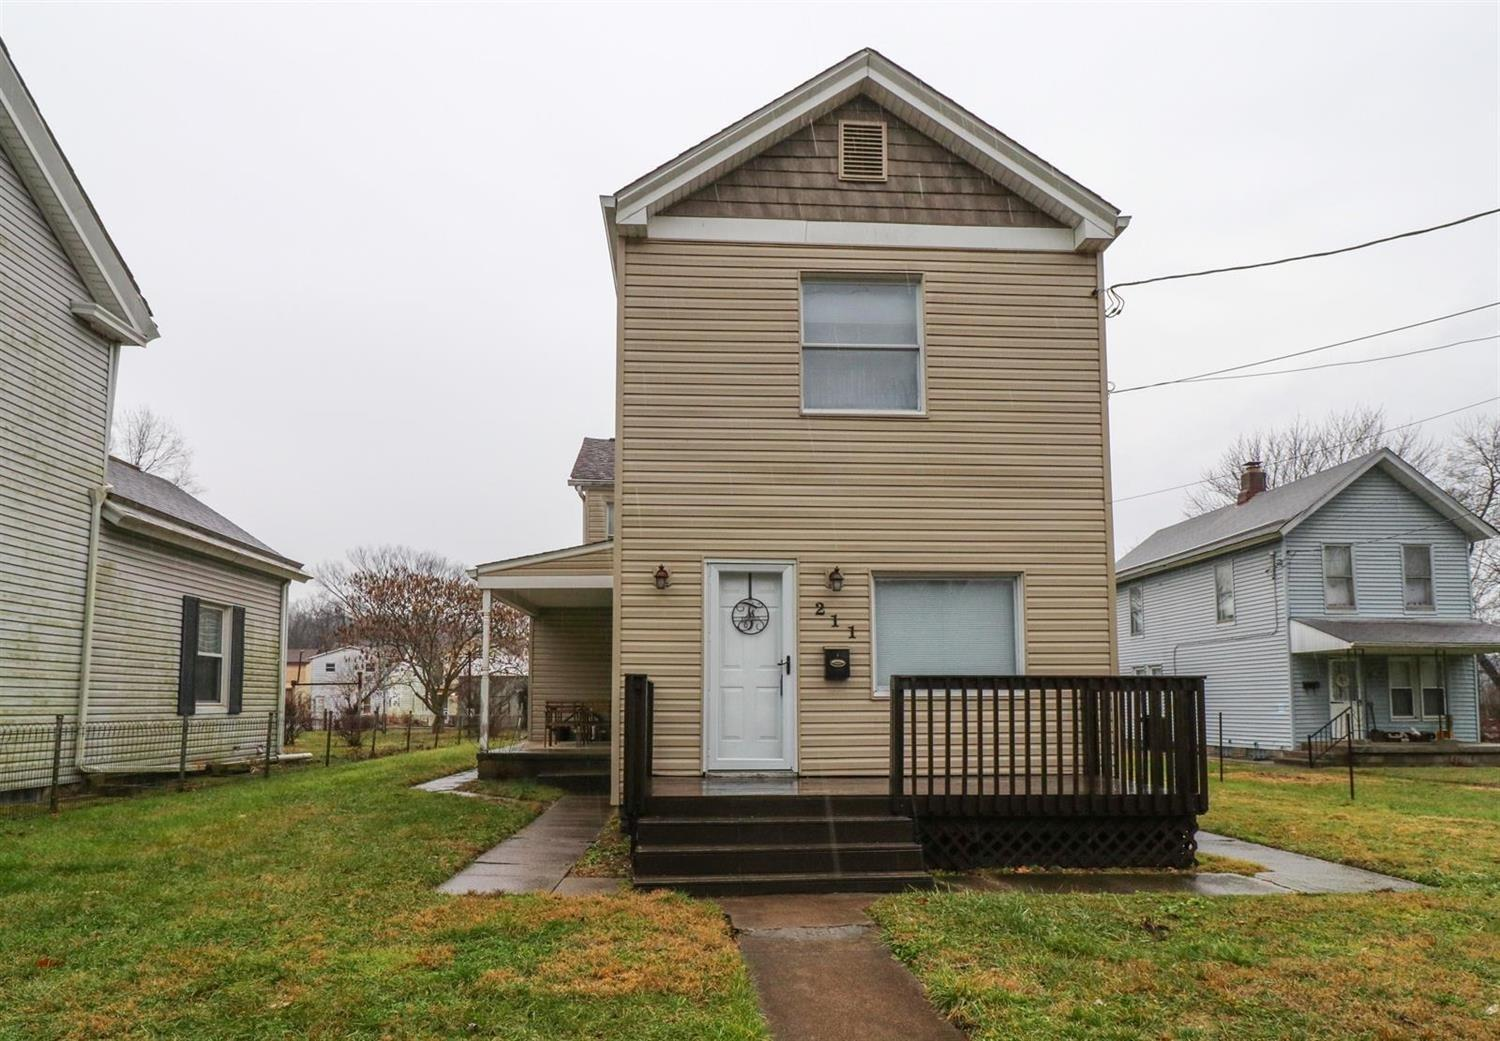 211 Bassett St Cleves, OH